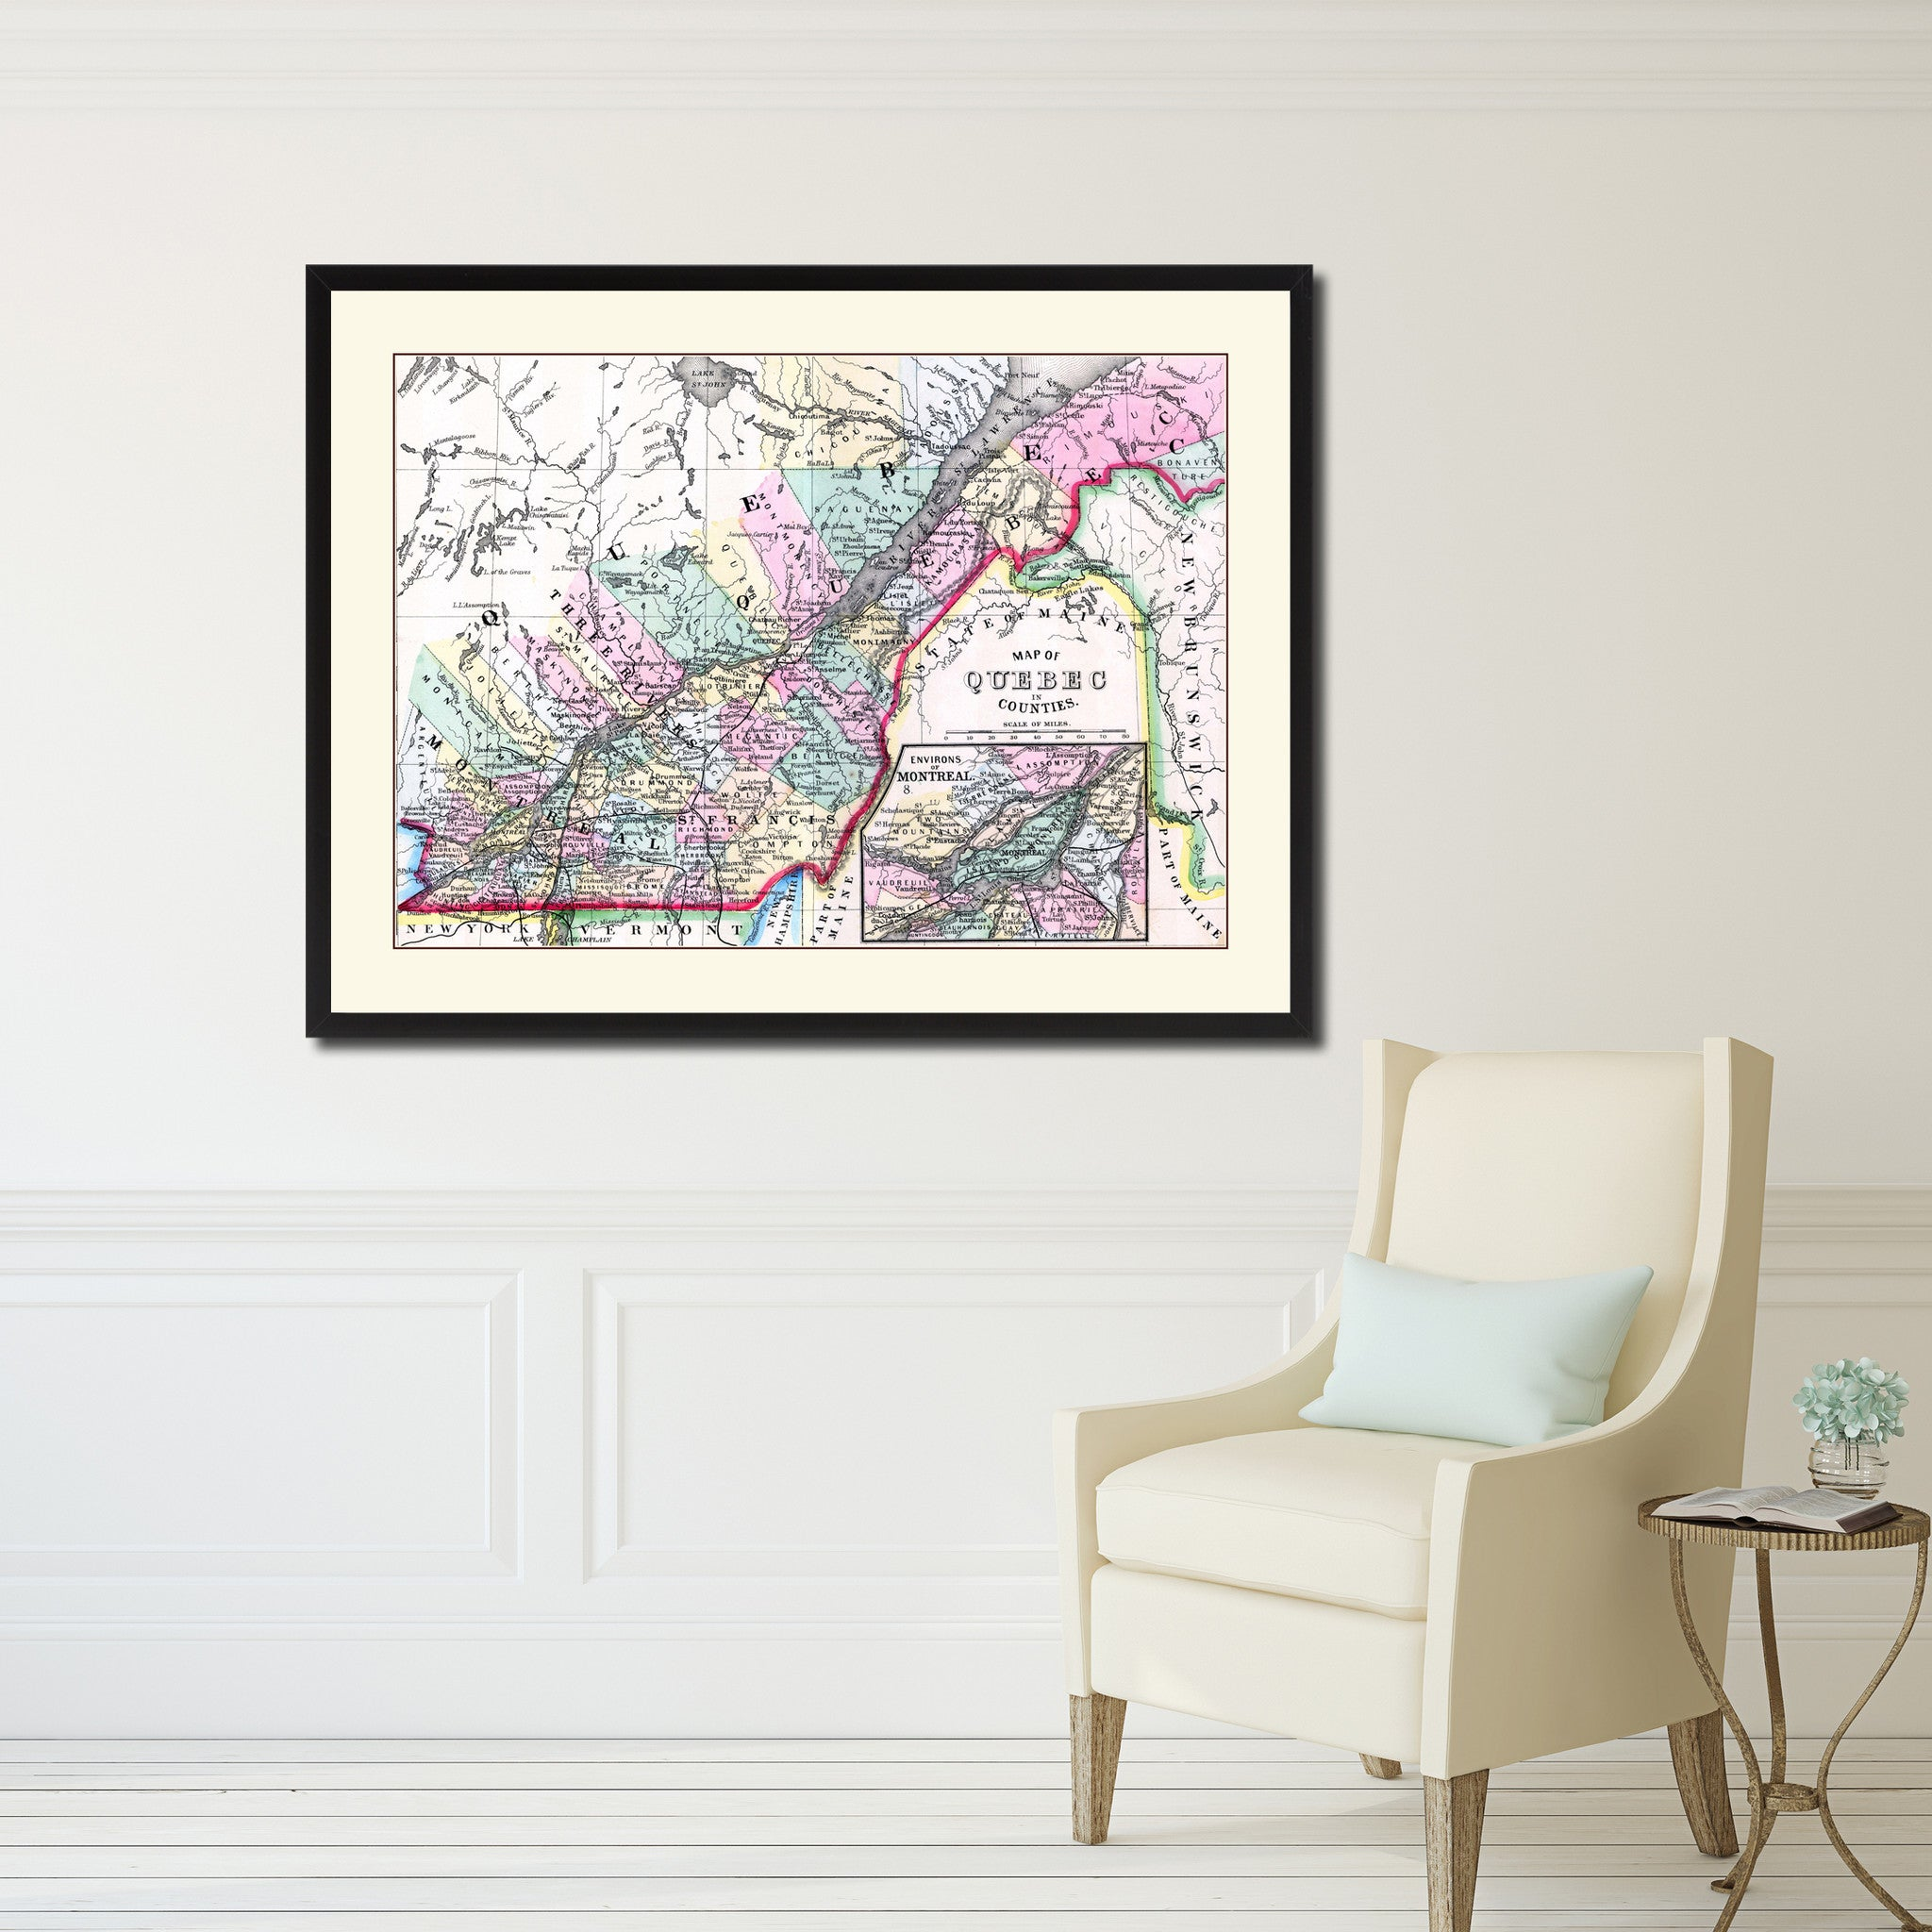 Quebec montreal vintage antique map wall art bedroom home decor quebec  montreal vintage antique map wall